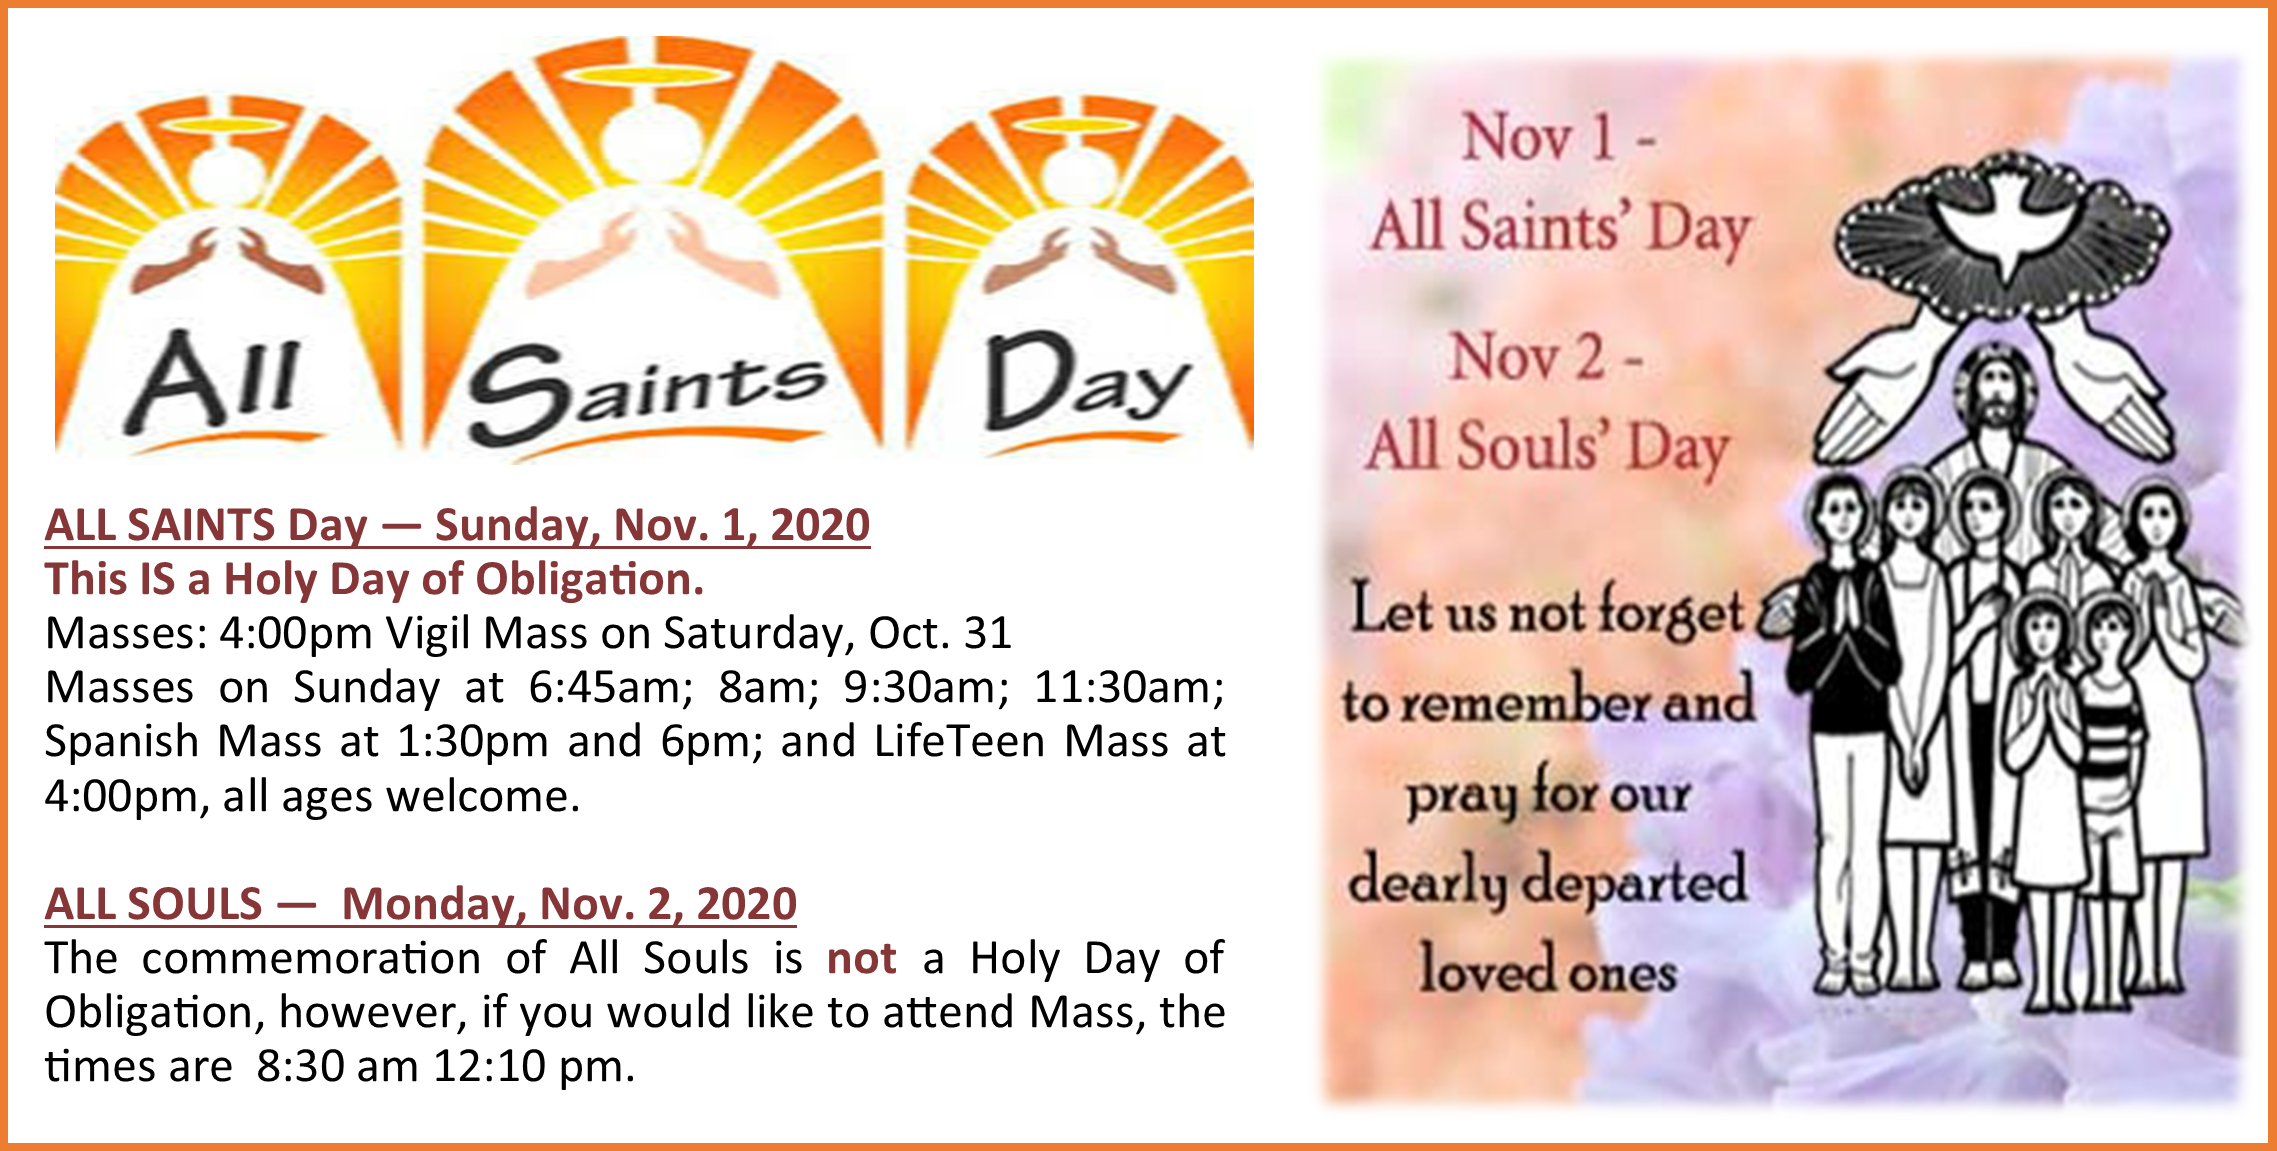 10-29-2020 All Saints schedule